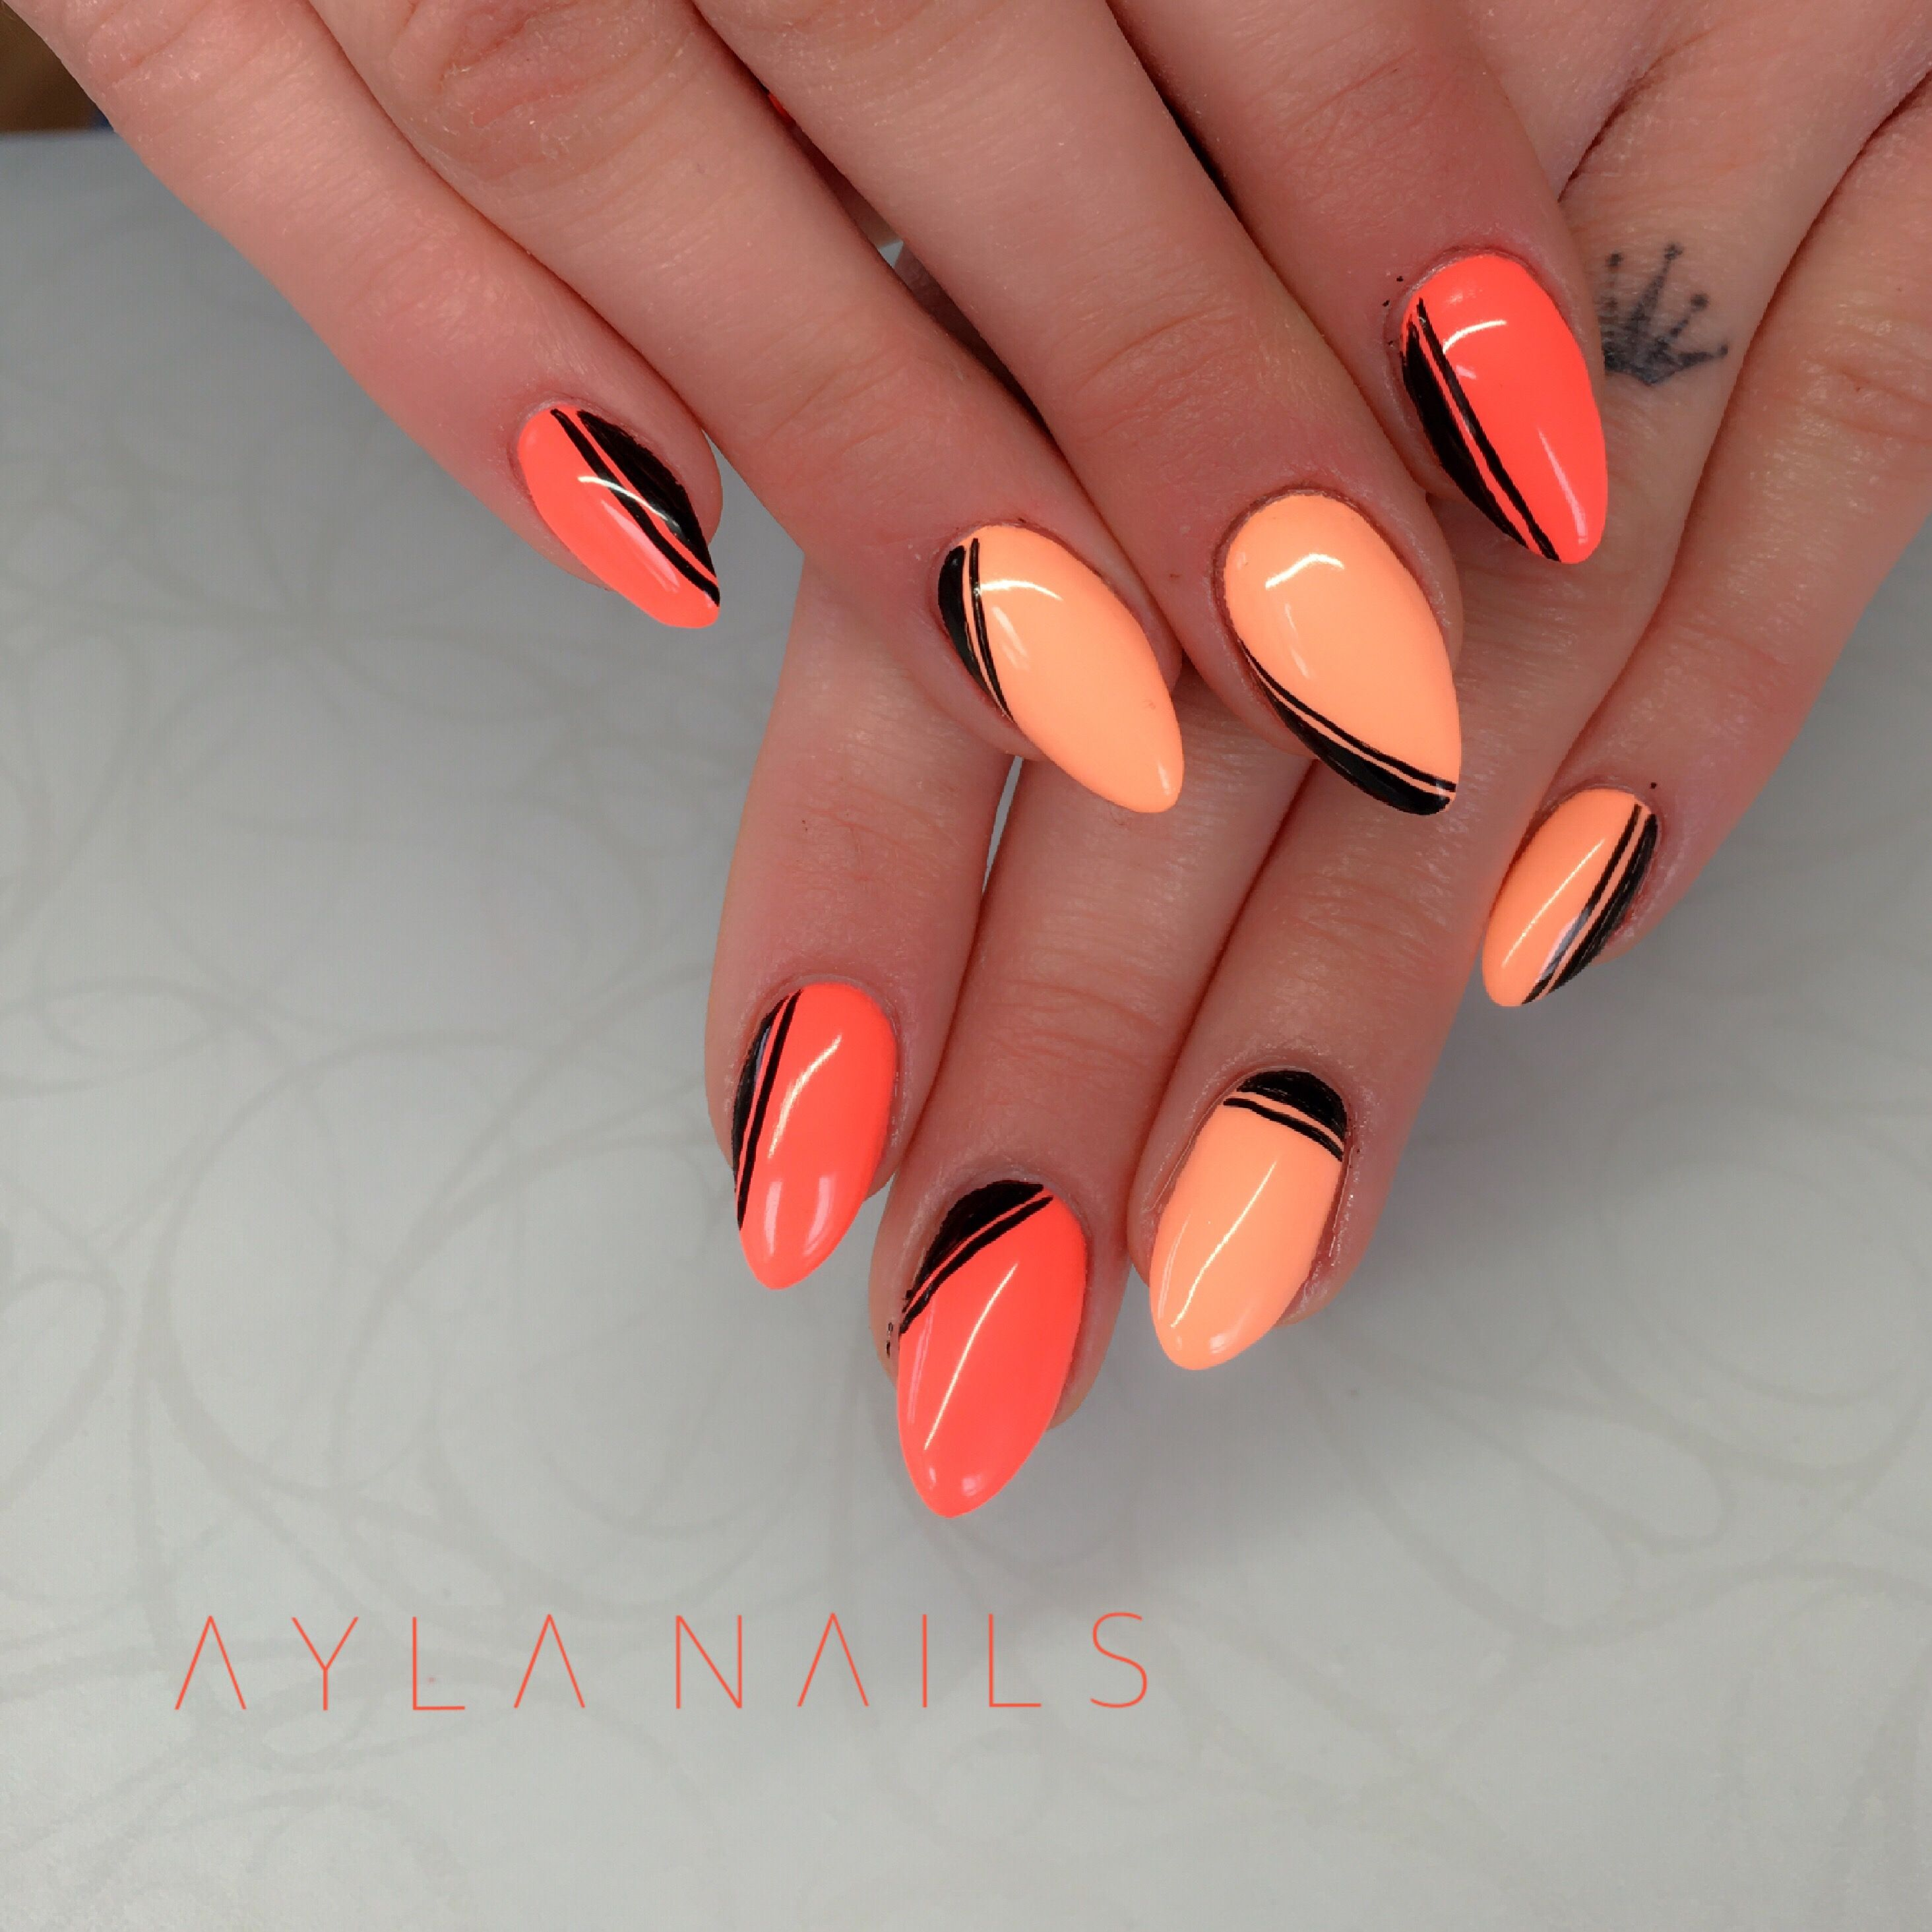 Pin by Anisia Elena on Nails Art Models | Pinterest | Manicure ...